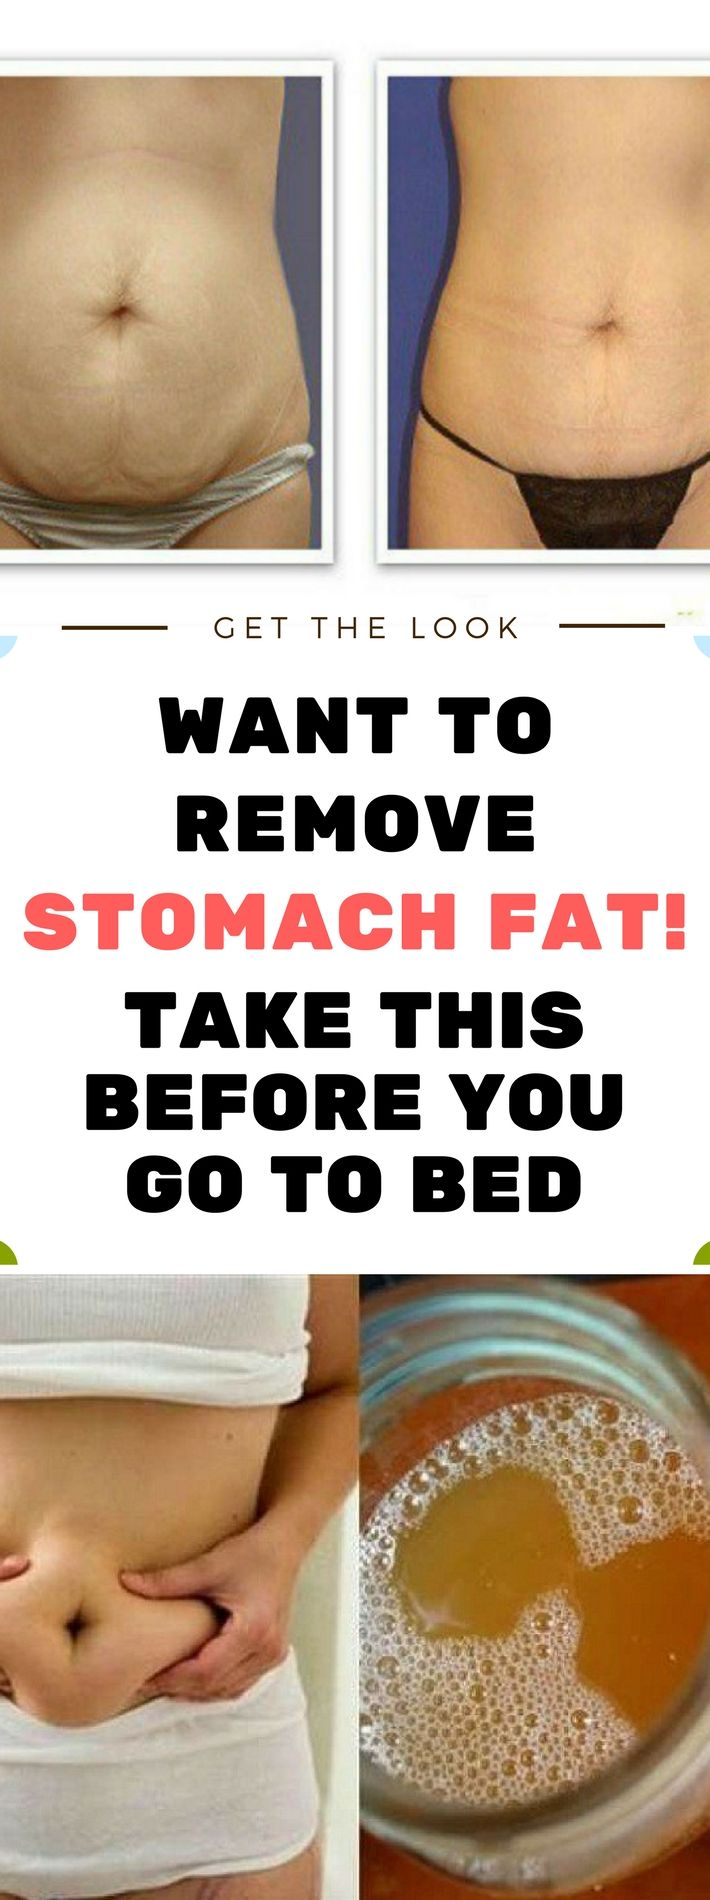 WANT TO REMOVE STOMACH FAT! -TAKE THIS BEFORE YOU GO TO BED!!! Need to know.!!! !!!